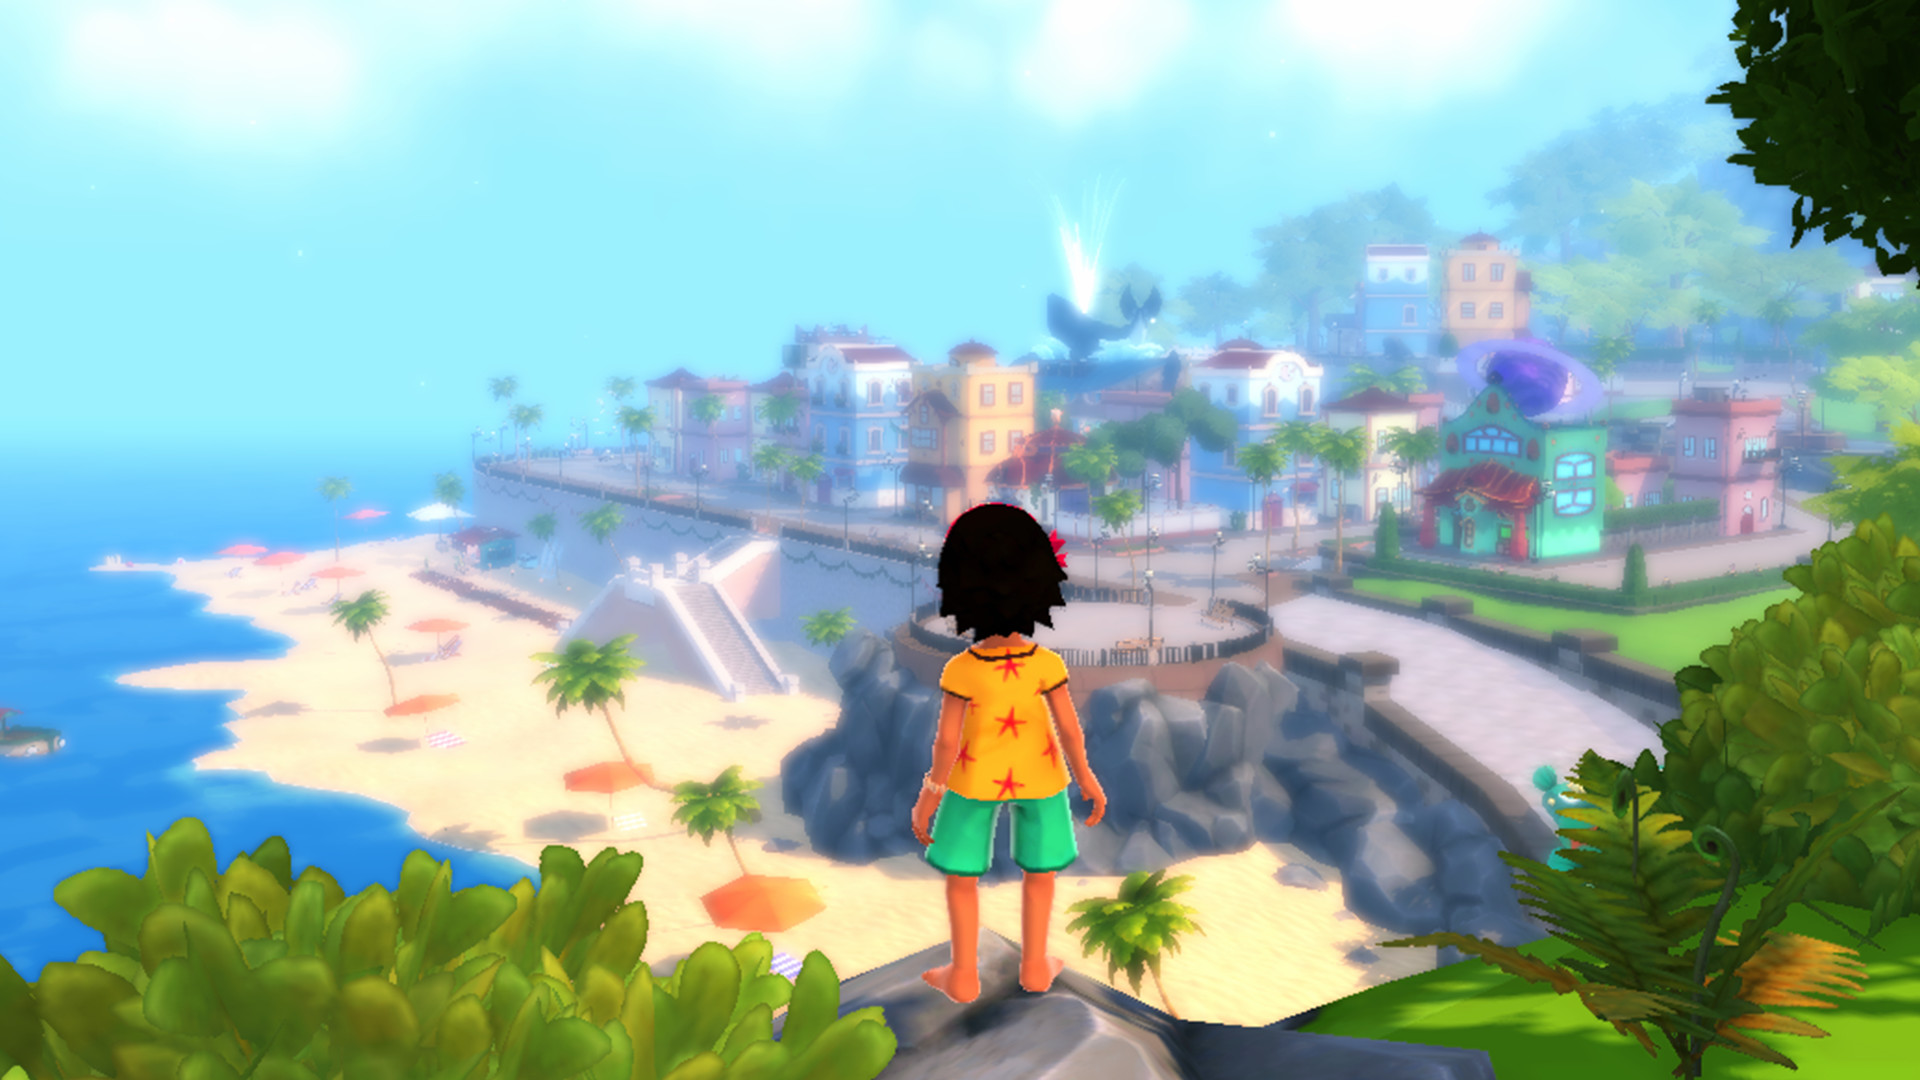 Summer in Mara Review – There and back again. Again and again.